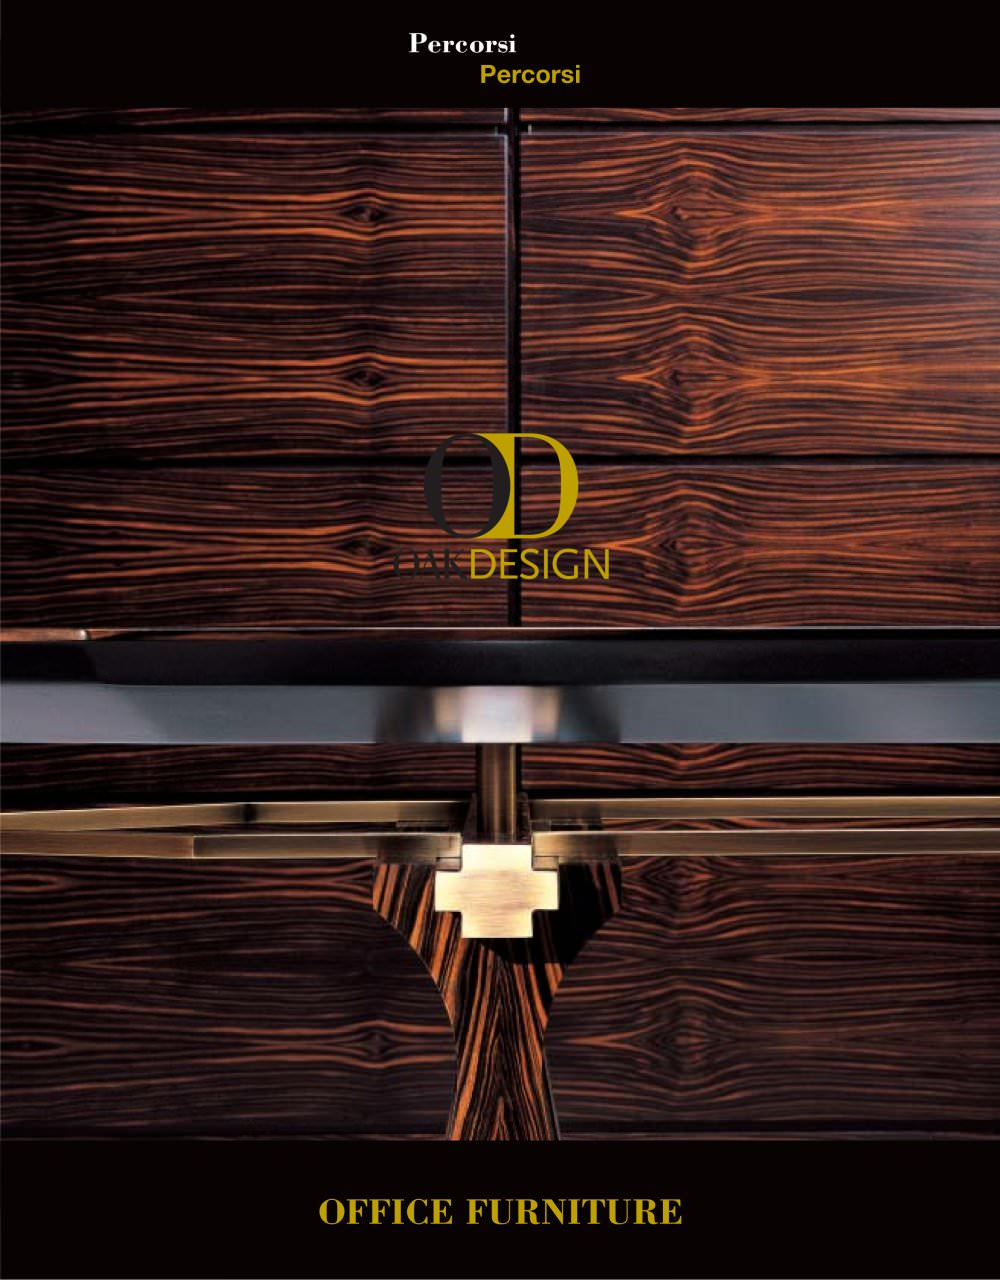 Oak design office furniture - OAK DESIGN - PDF Catalogues ...